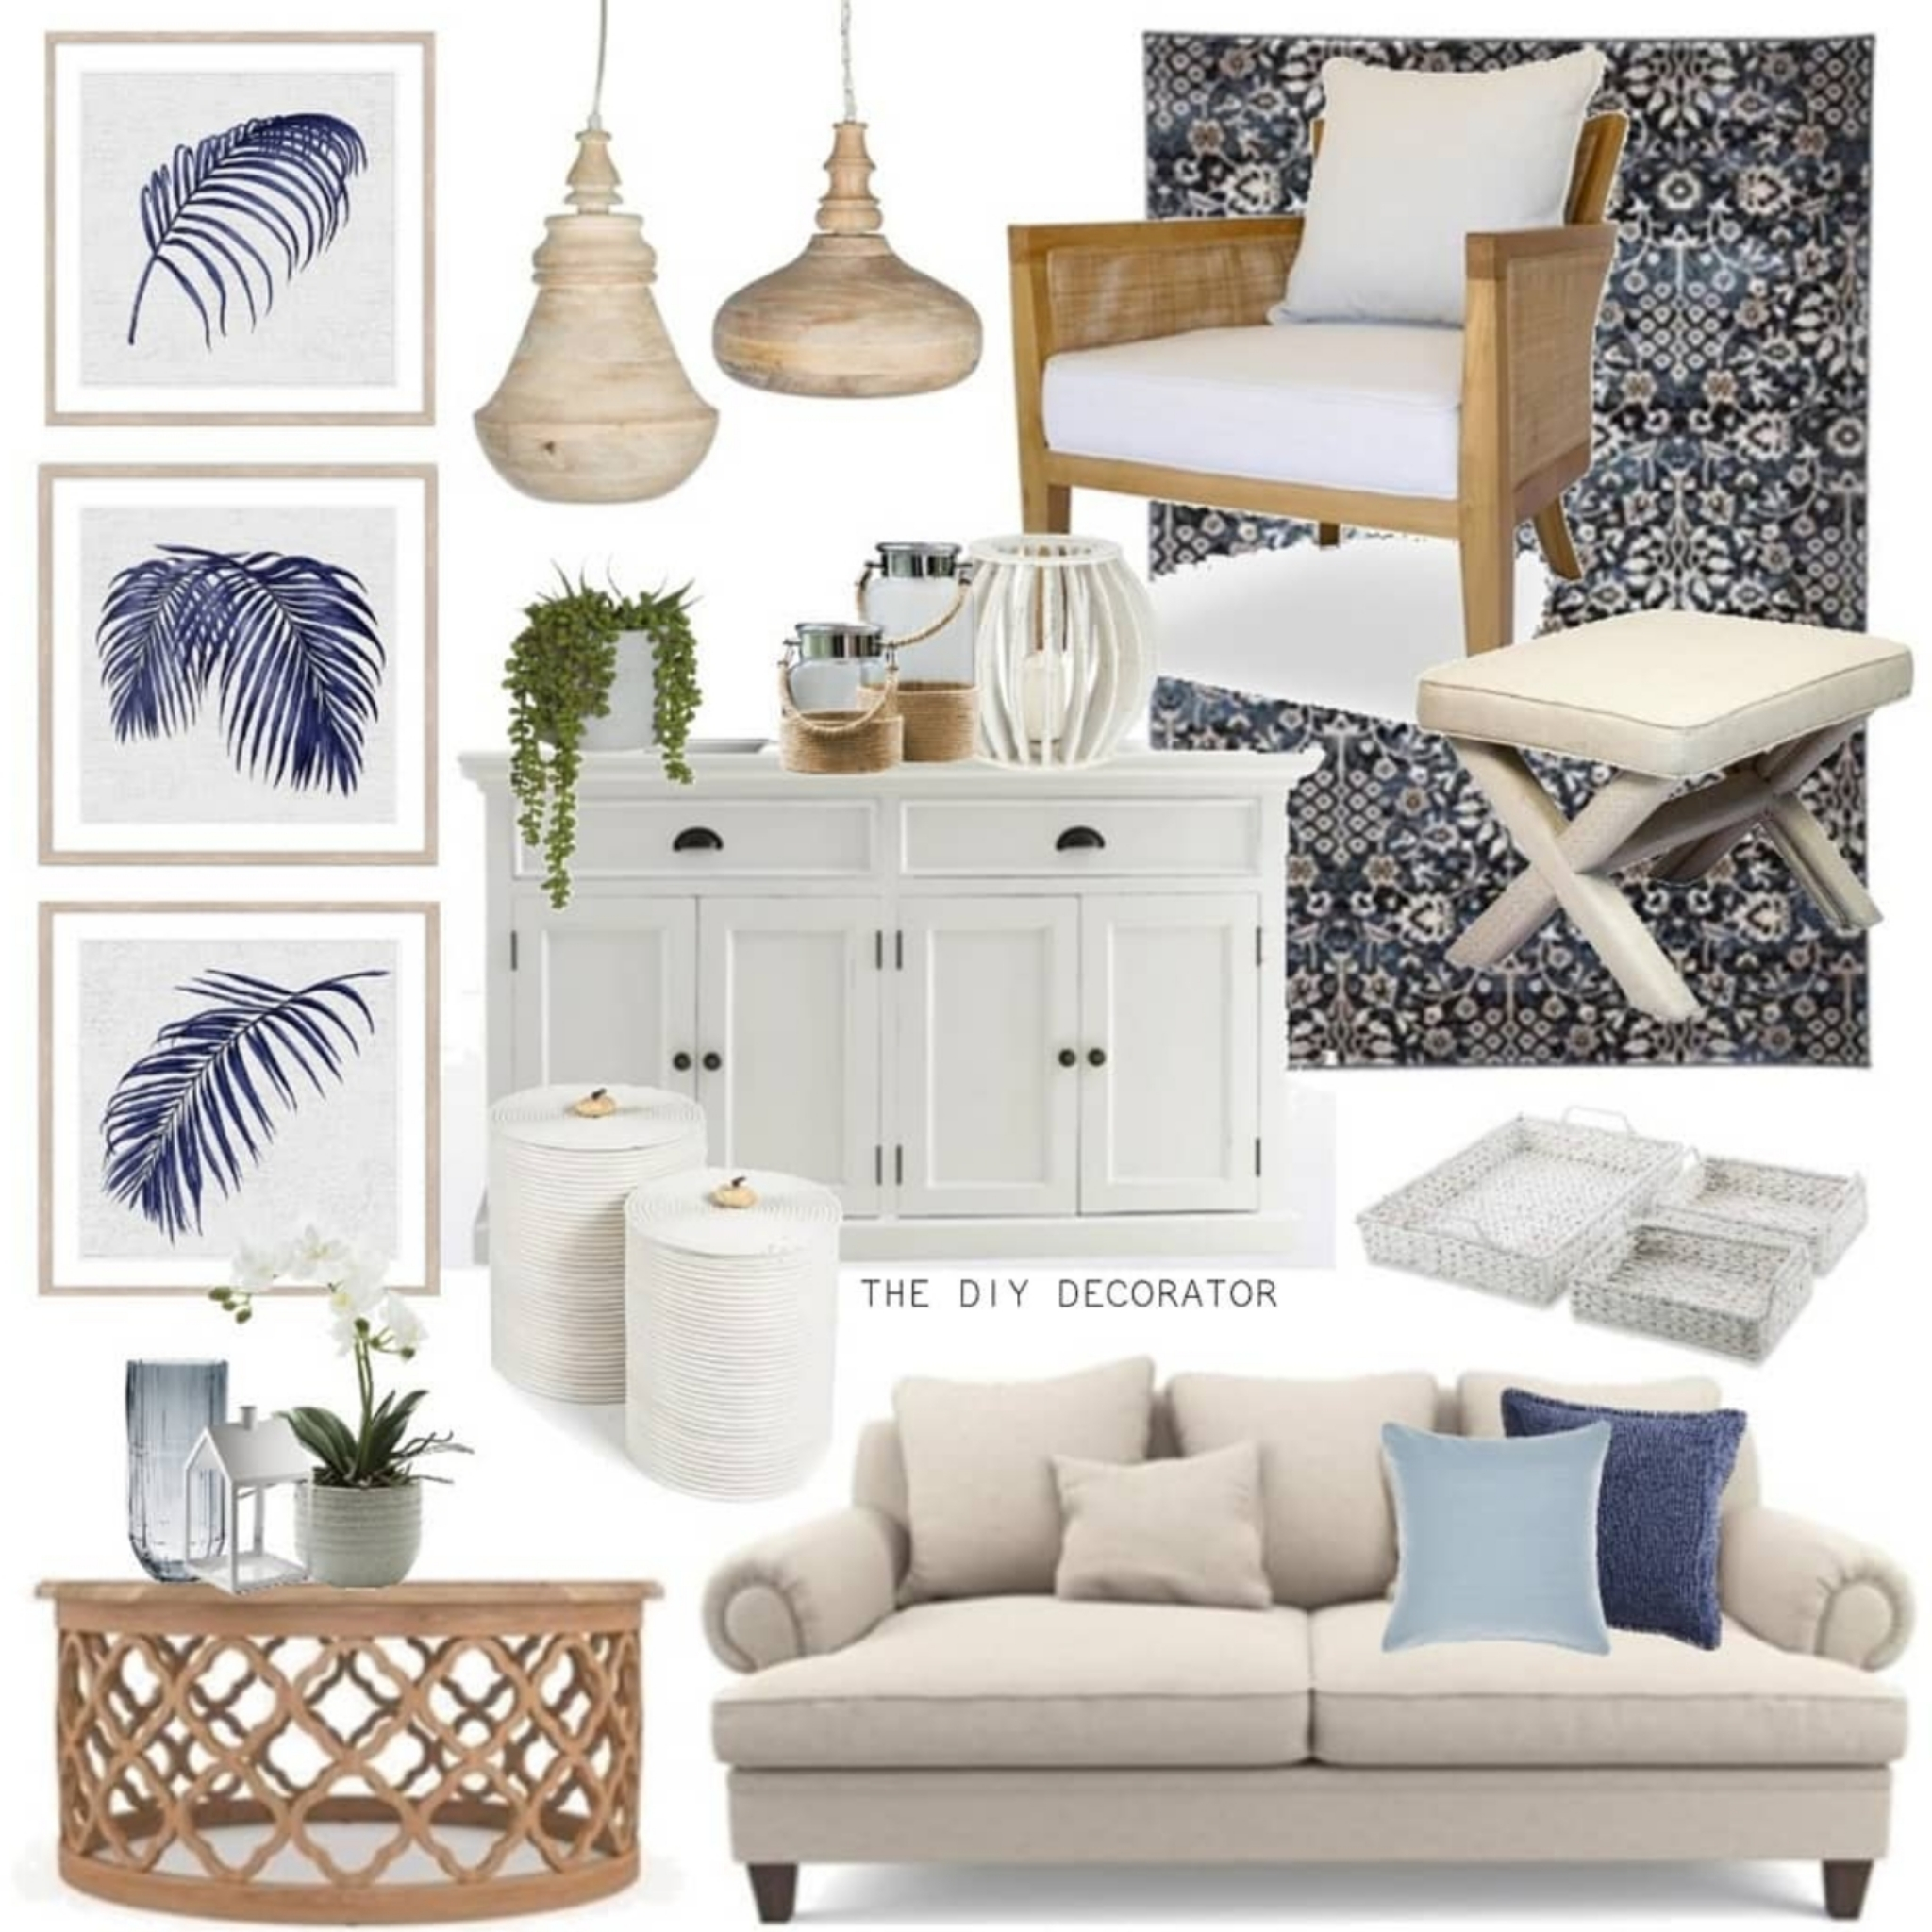 Hamptons Home Styling With I Wanna Go Home The Diy Decorator